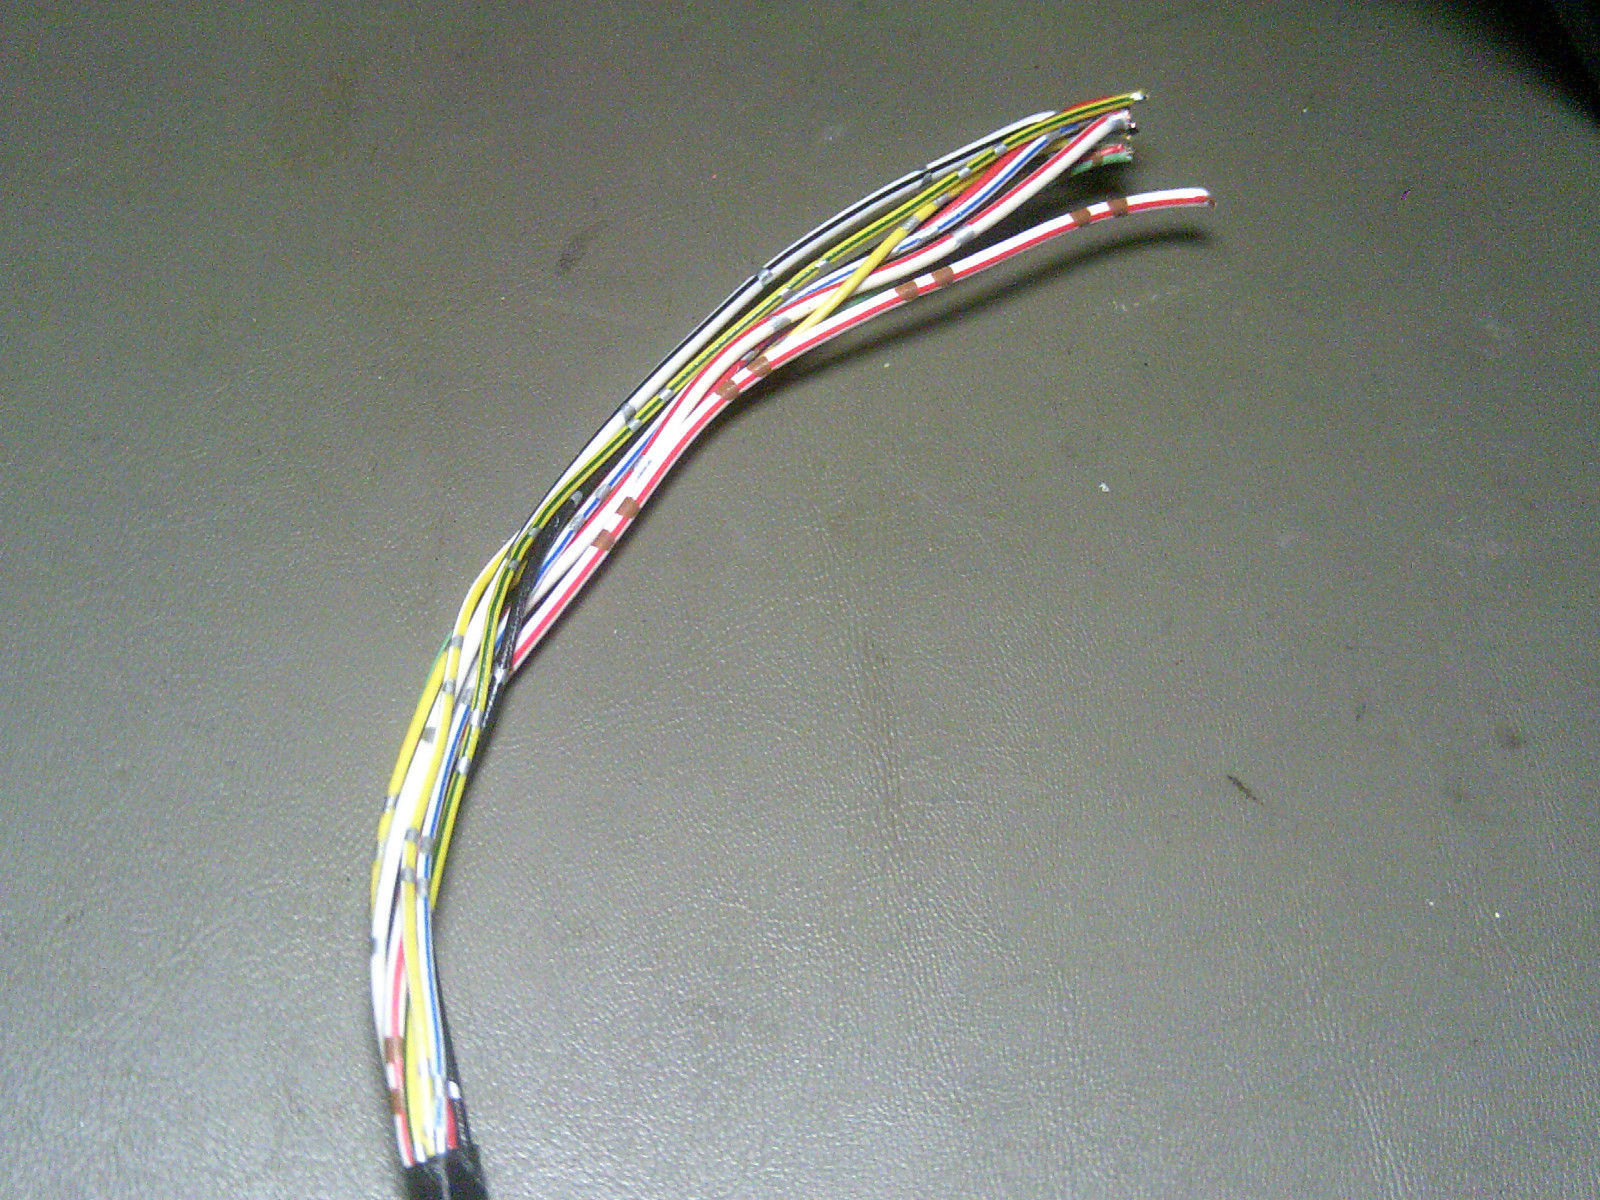 Primary image for 98 Accord EX 4 Door RH Side Rear Door Wiring Harness Pigtail RUNS TO BODY SIDE